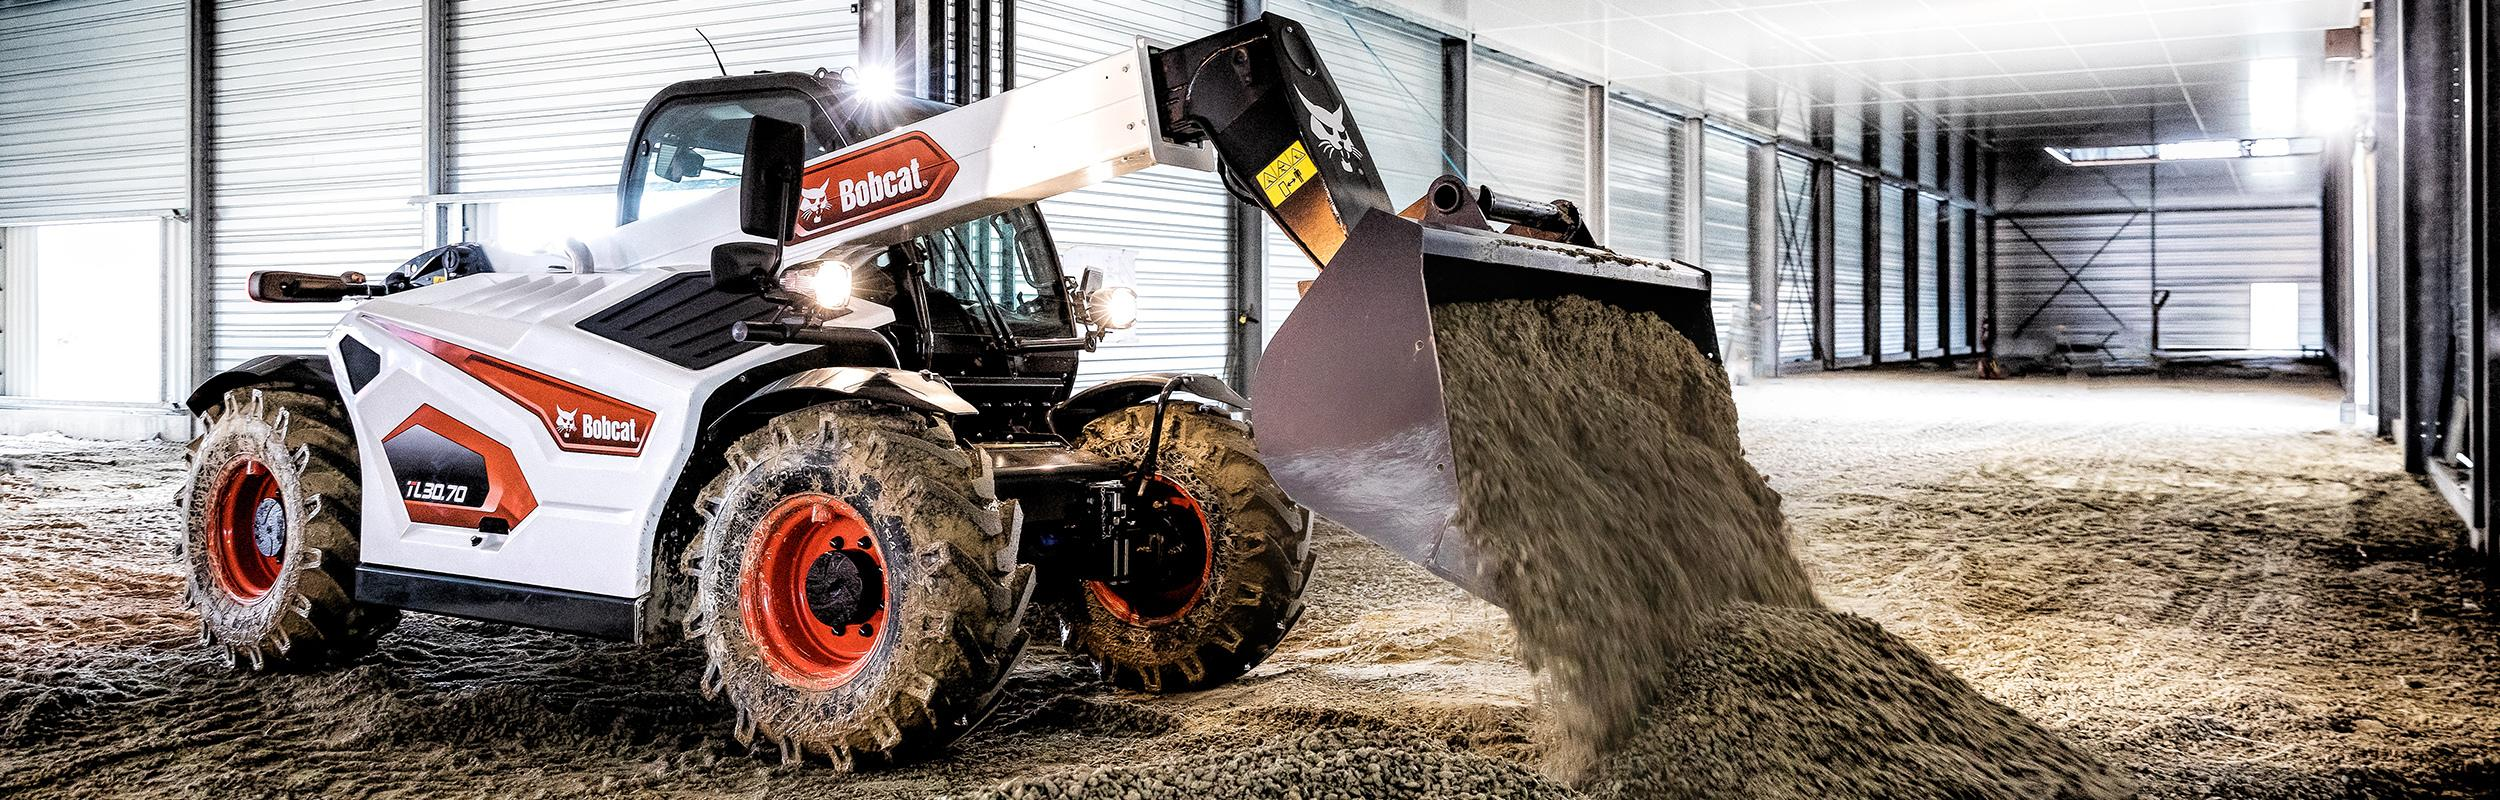 R-Series Telehandlers for Construction